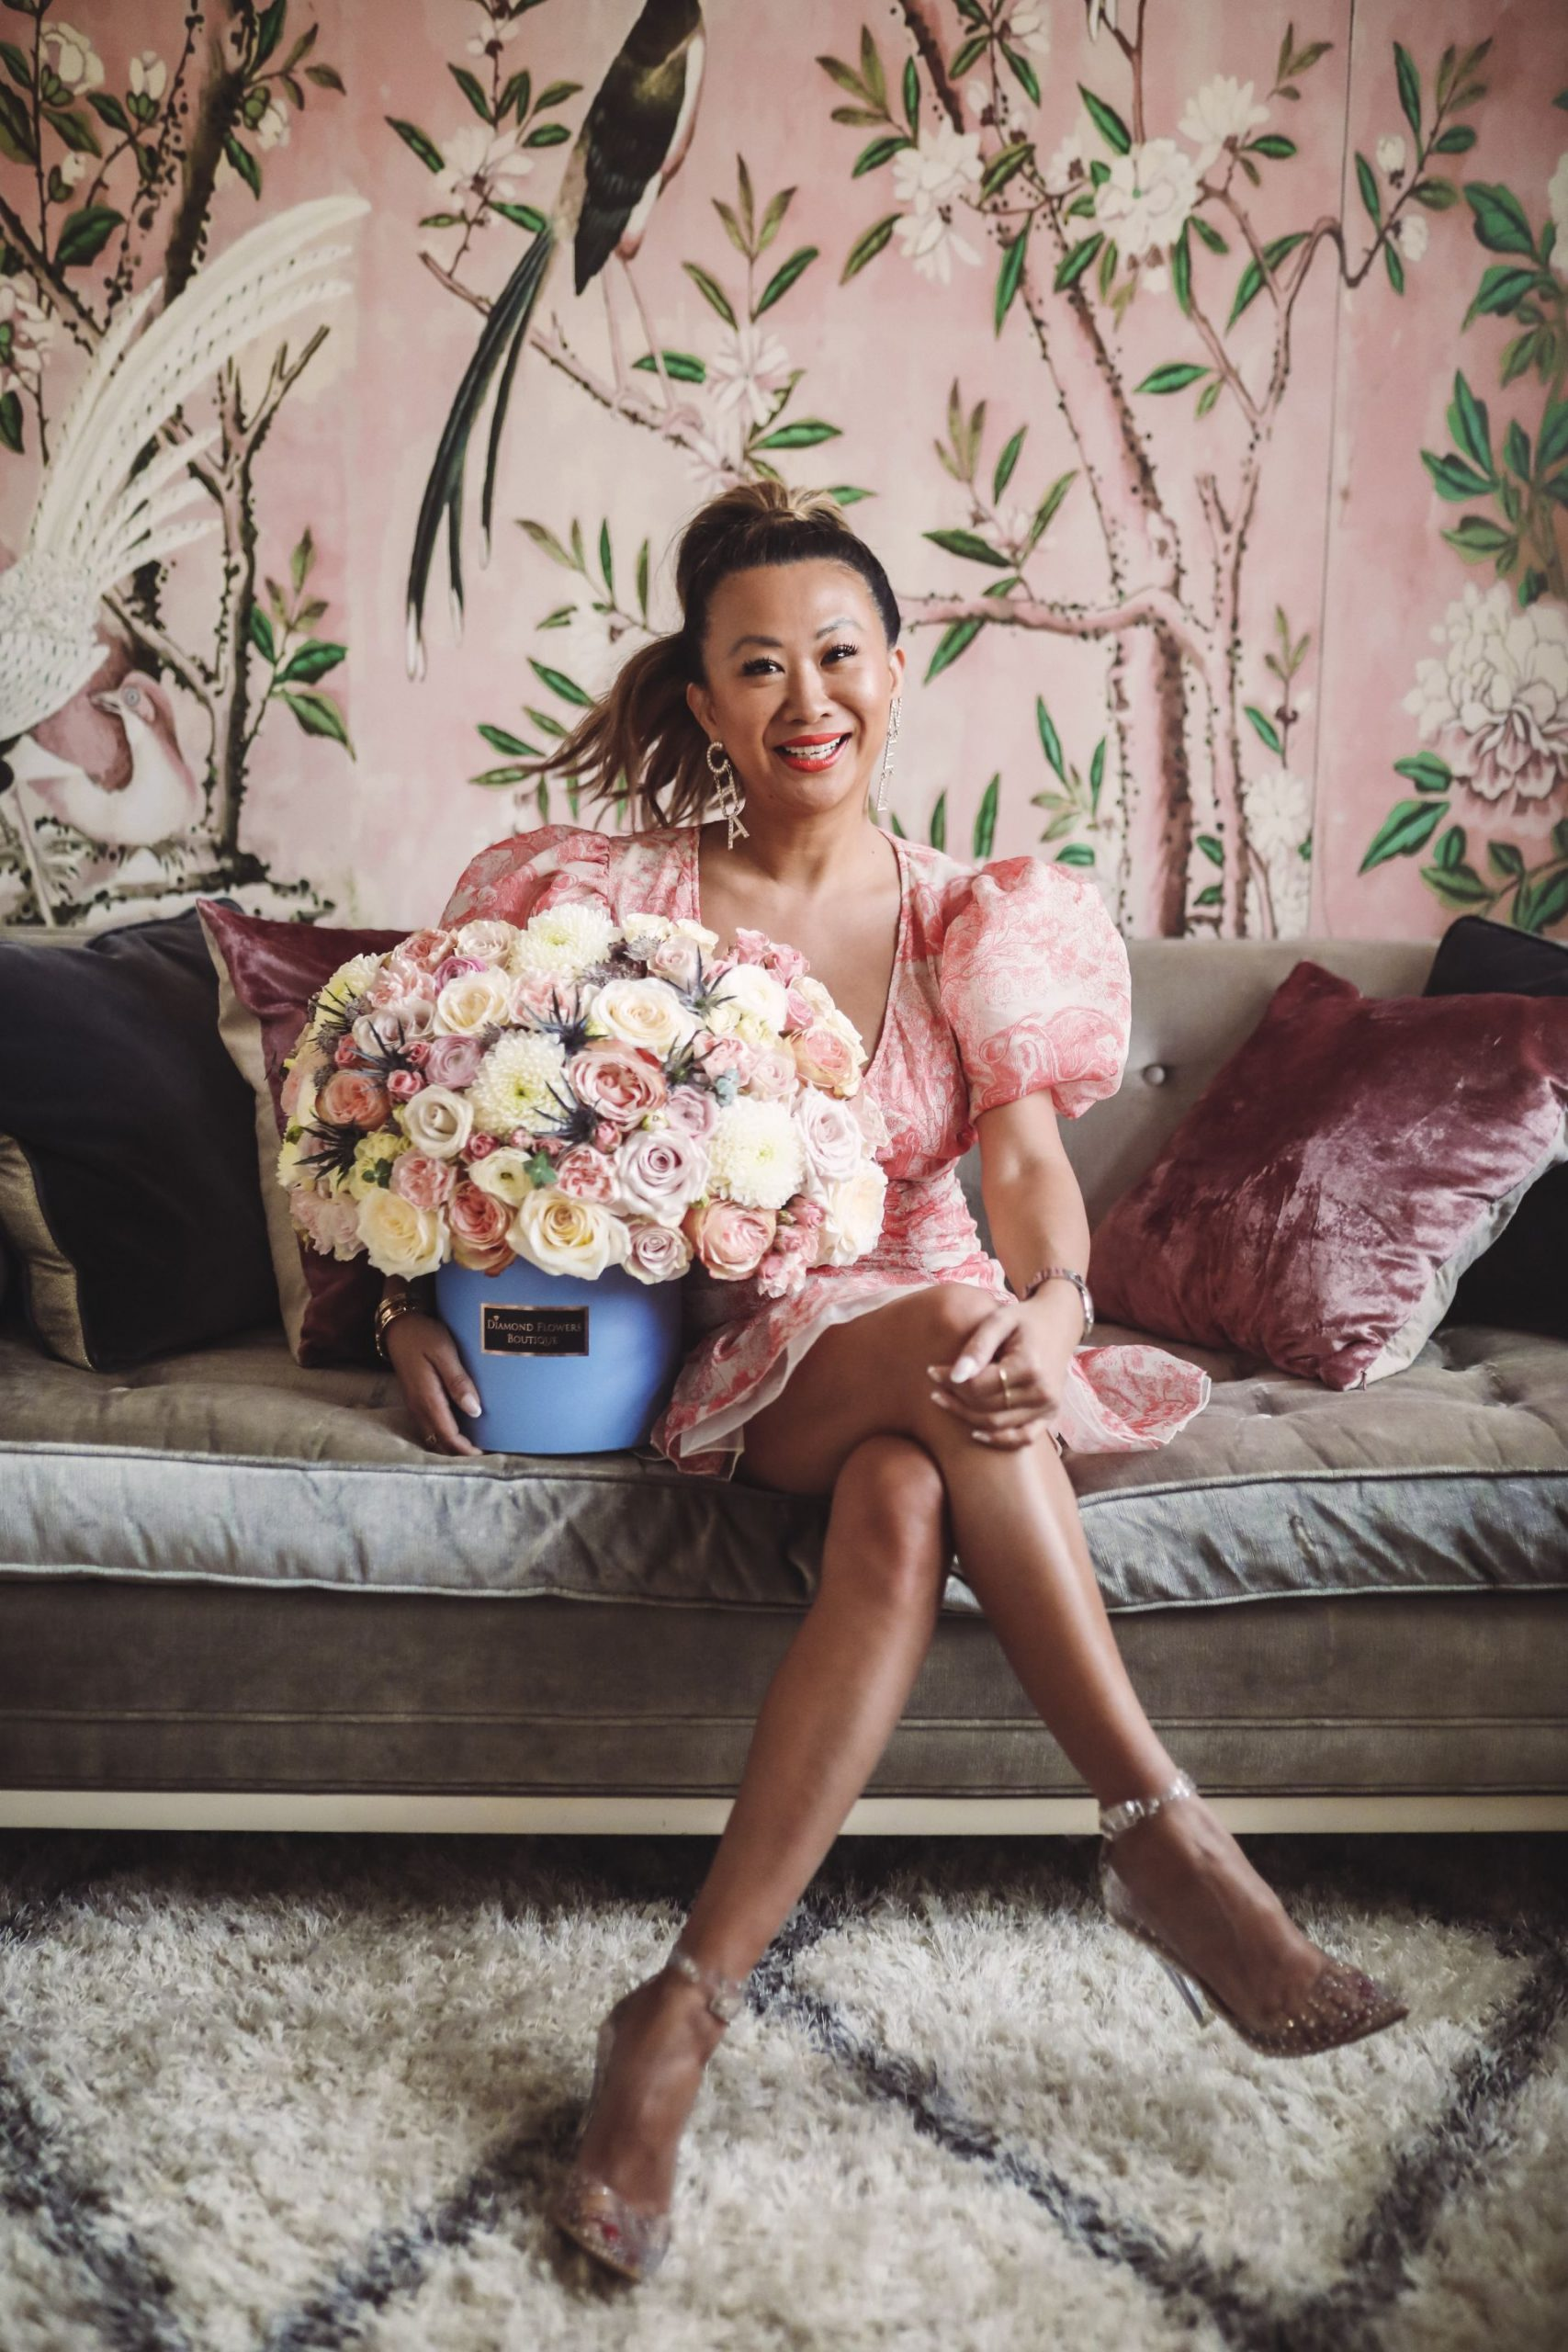 best chicago florist, chicago florals, best wallpaper for office, birthday flowers, jonathan adler couch, best home office, glam office decor, jennifer worman